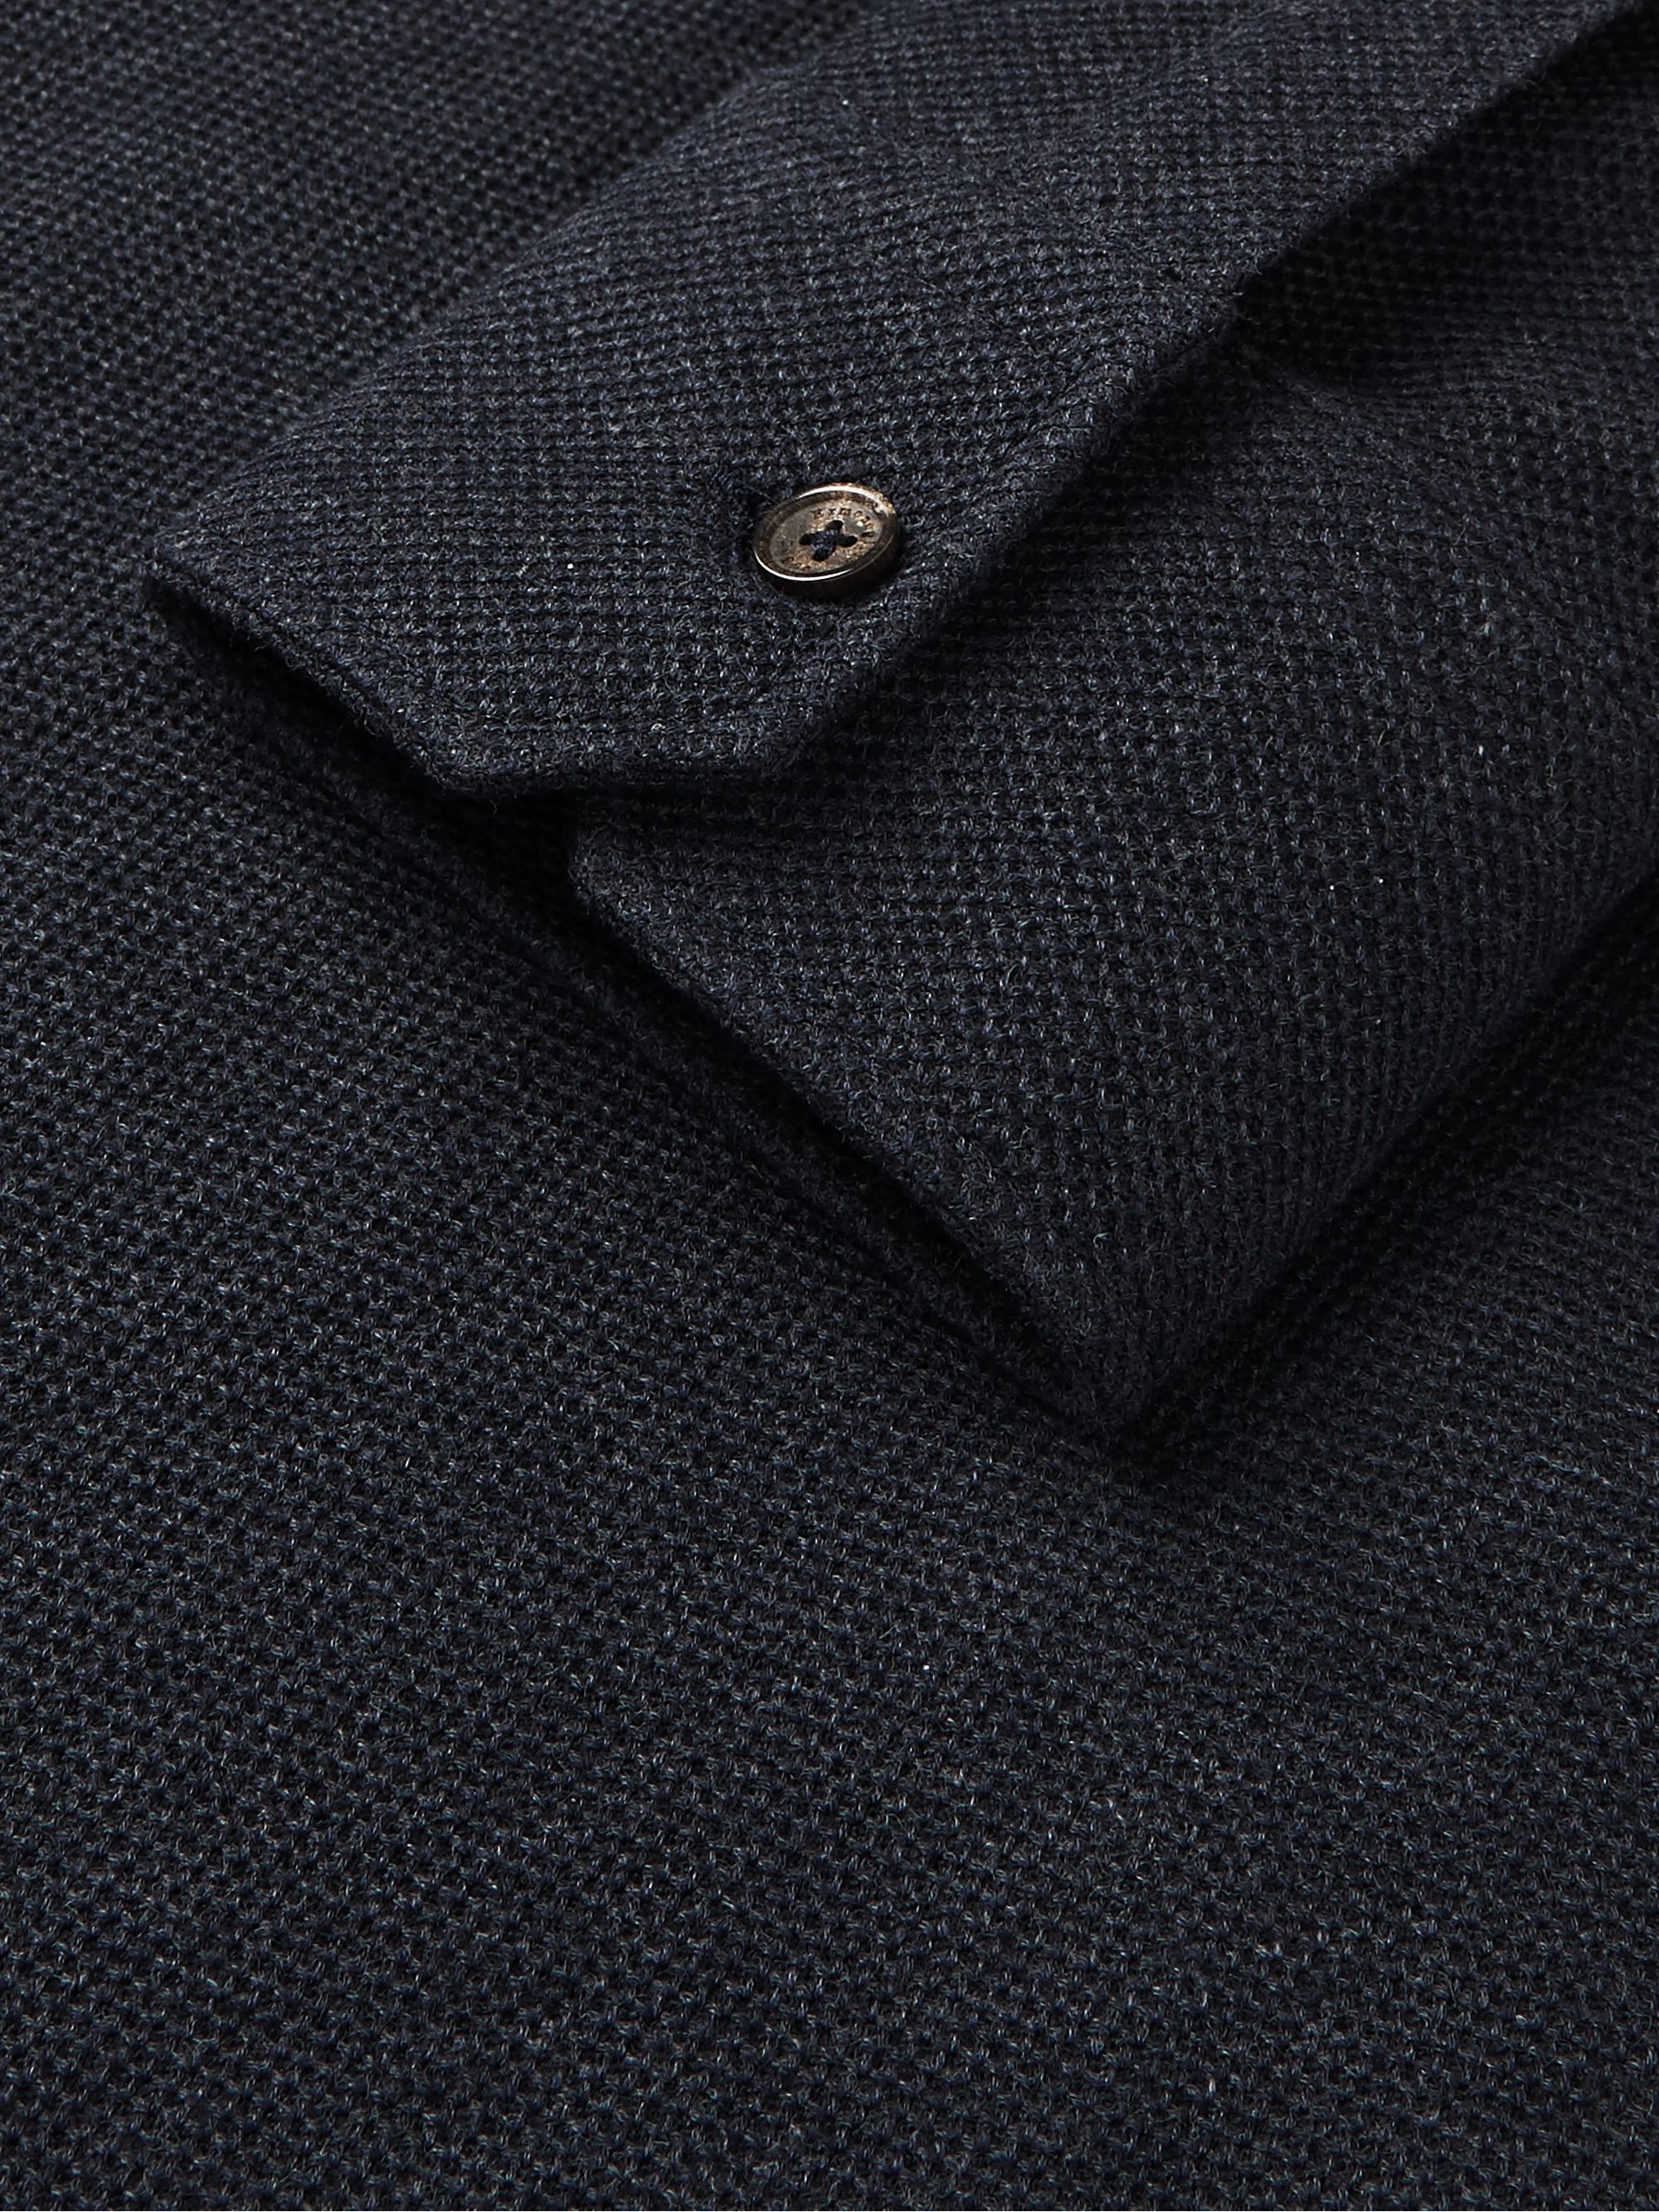 Ermenegildo Zegna Suede-Trimmed Cotton and Cashmere-Blend Piqué Polo Shirt